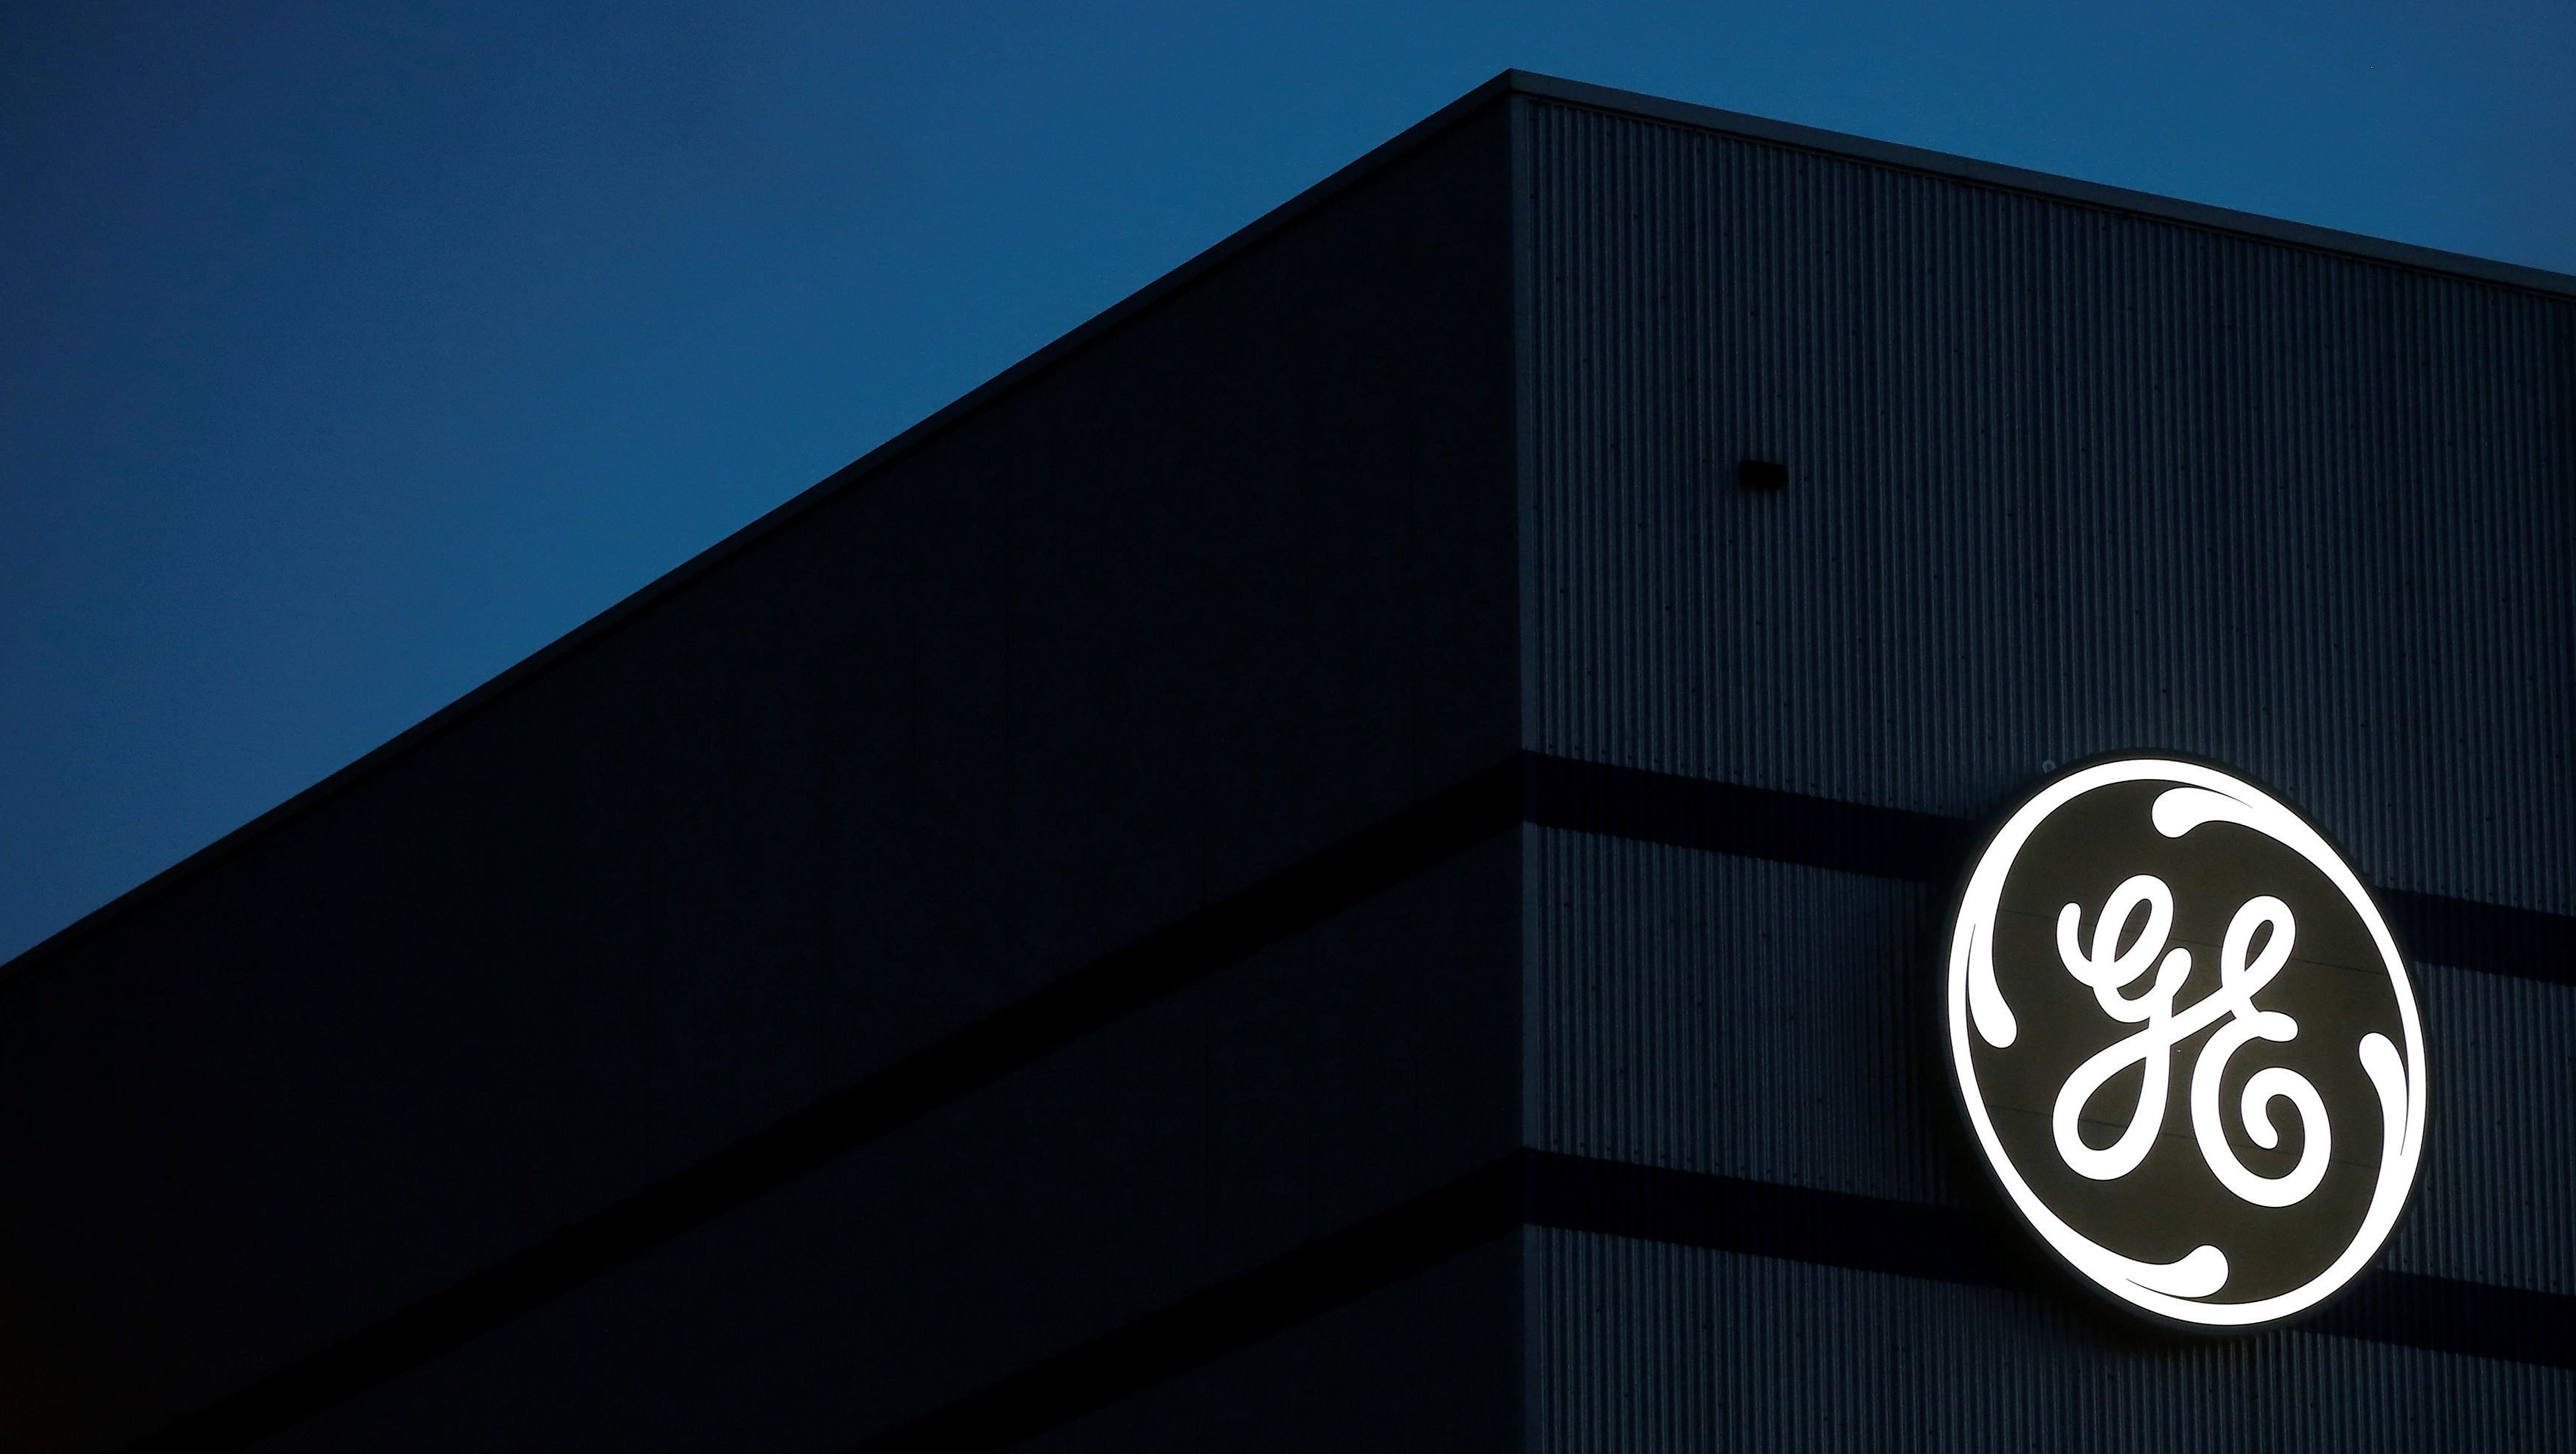 General Electric to leave Dow Jones Industrial Average amid stock slide